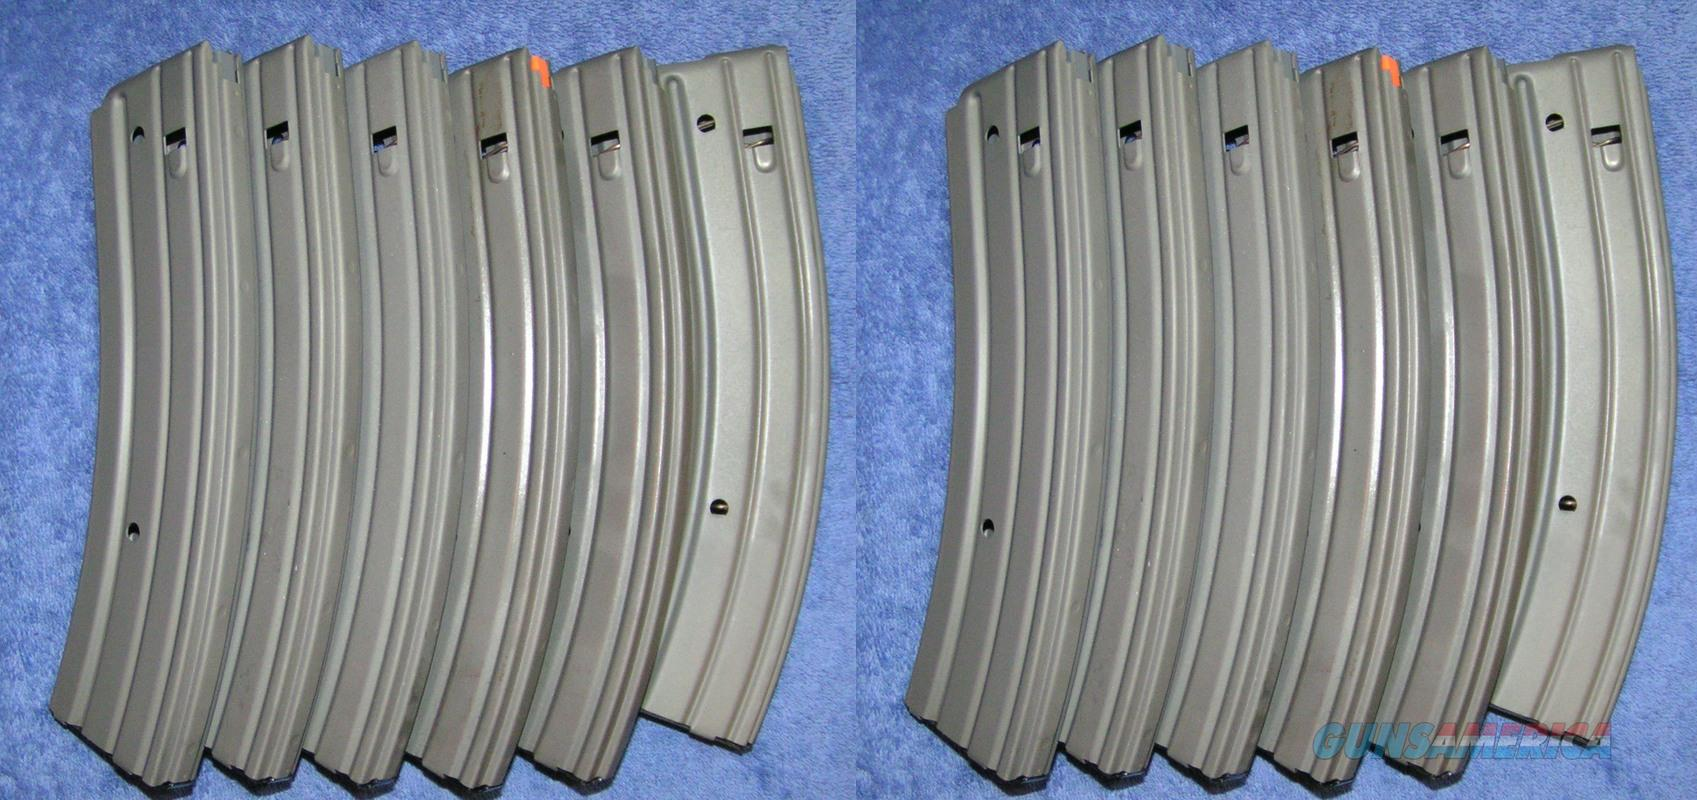 10 AR15 mags by C. Daly. 40rd steel. Free shipping  Non-Guns > Magazines & Clips > Rifle Magazines > AR-15 Type